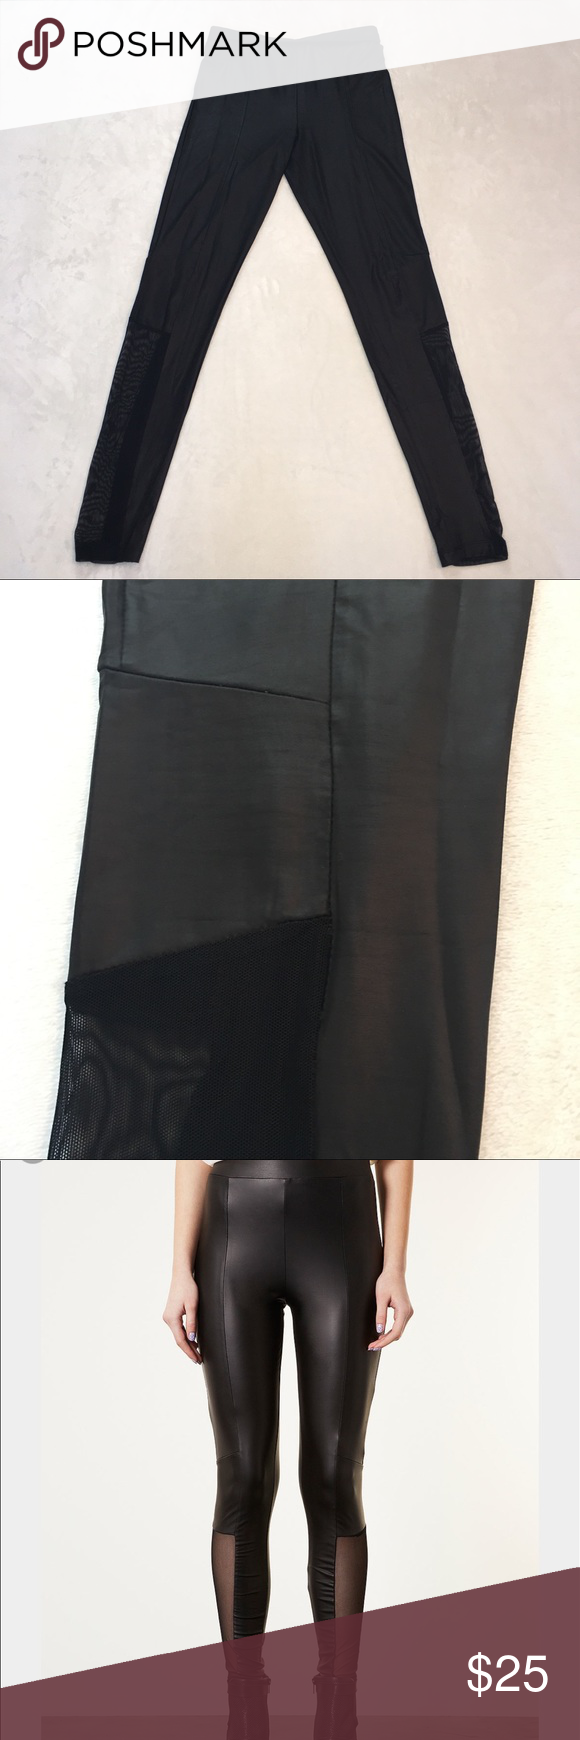 "Topshop Black Mesh Panel Wet Look Leggings Nice stretch leggings with elastic waist in excellent condition. Material - 93% Polyester 7% Elastane. Measurements (approximate) - Inseam 29"" Waist (lying flat) 13-1/4"" Rise 10-1/2"". T5 Topshop Pants Leggings"